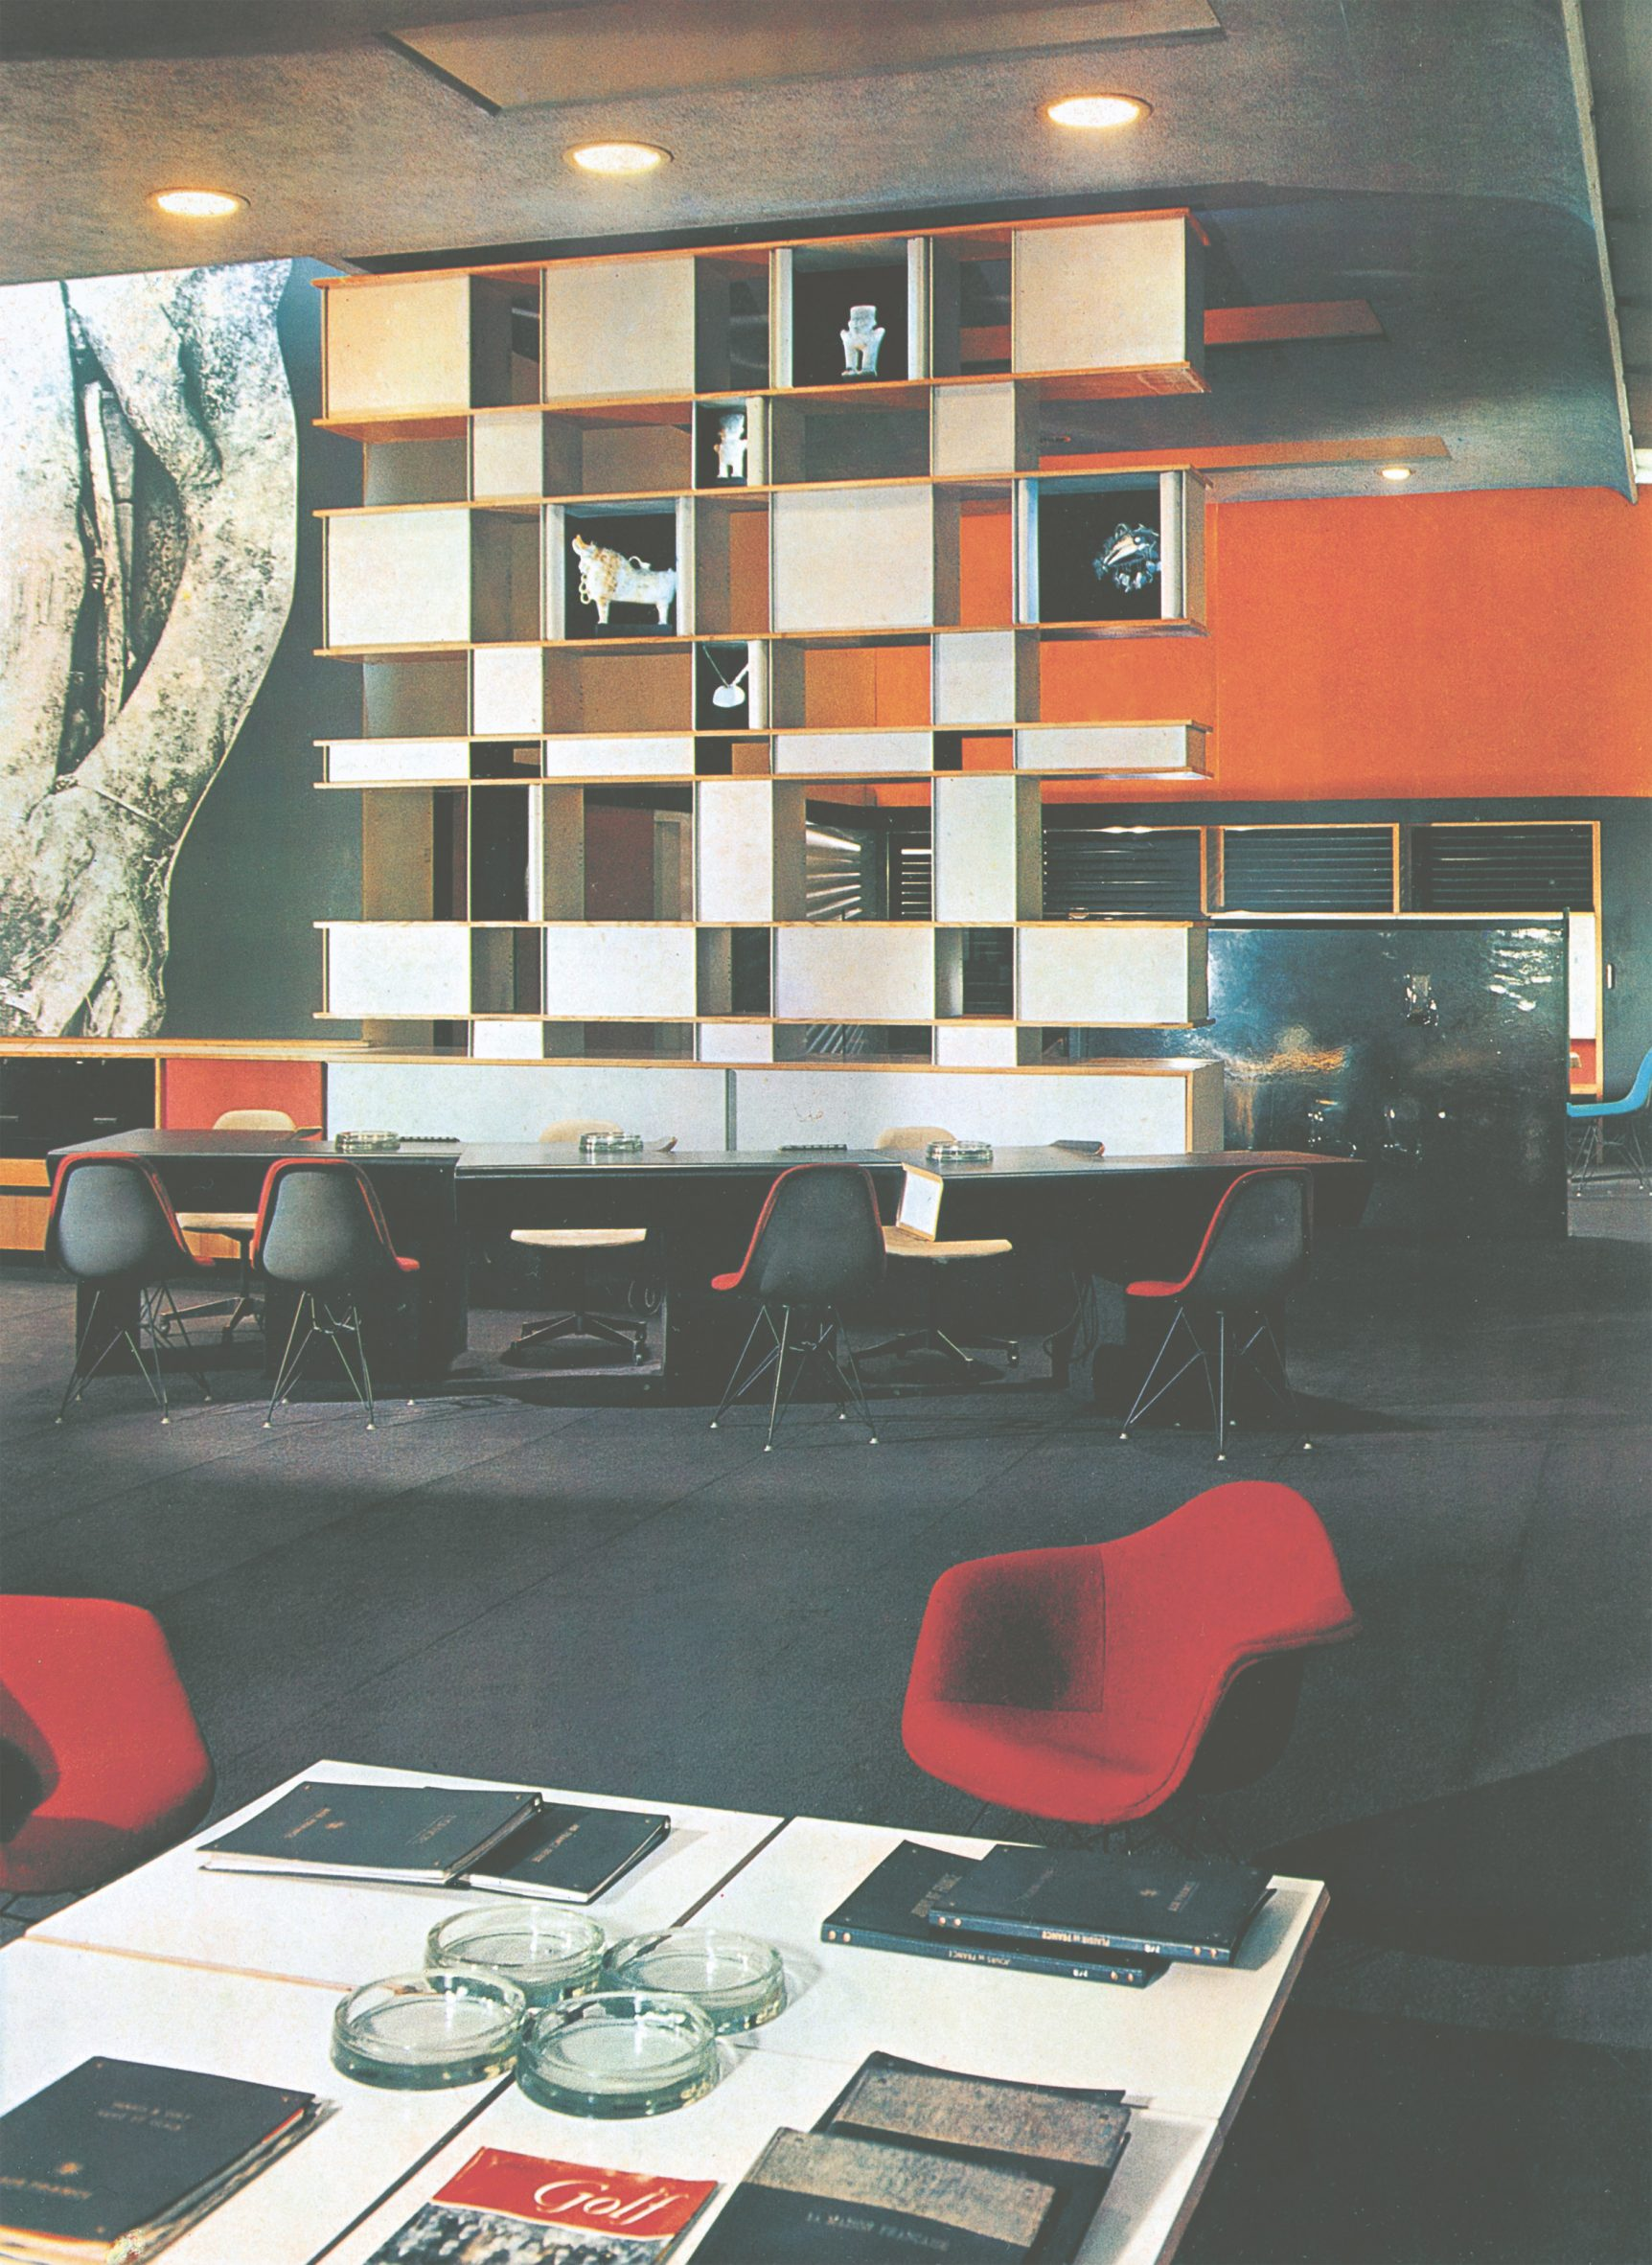 Charlotte Perriand's wall divider and storage unit